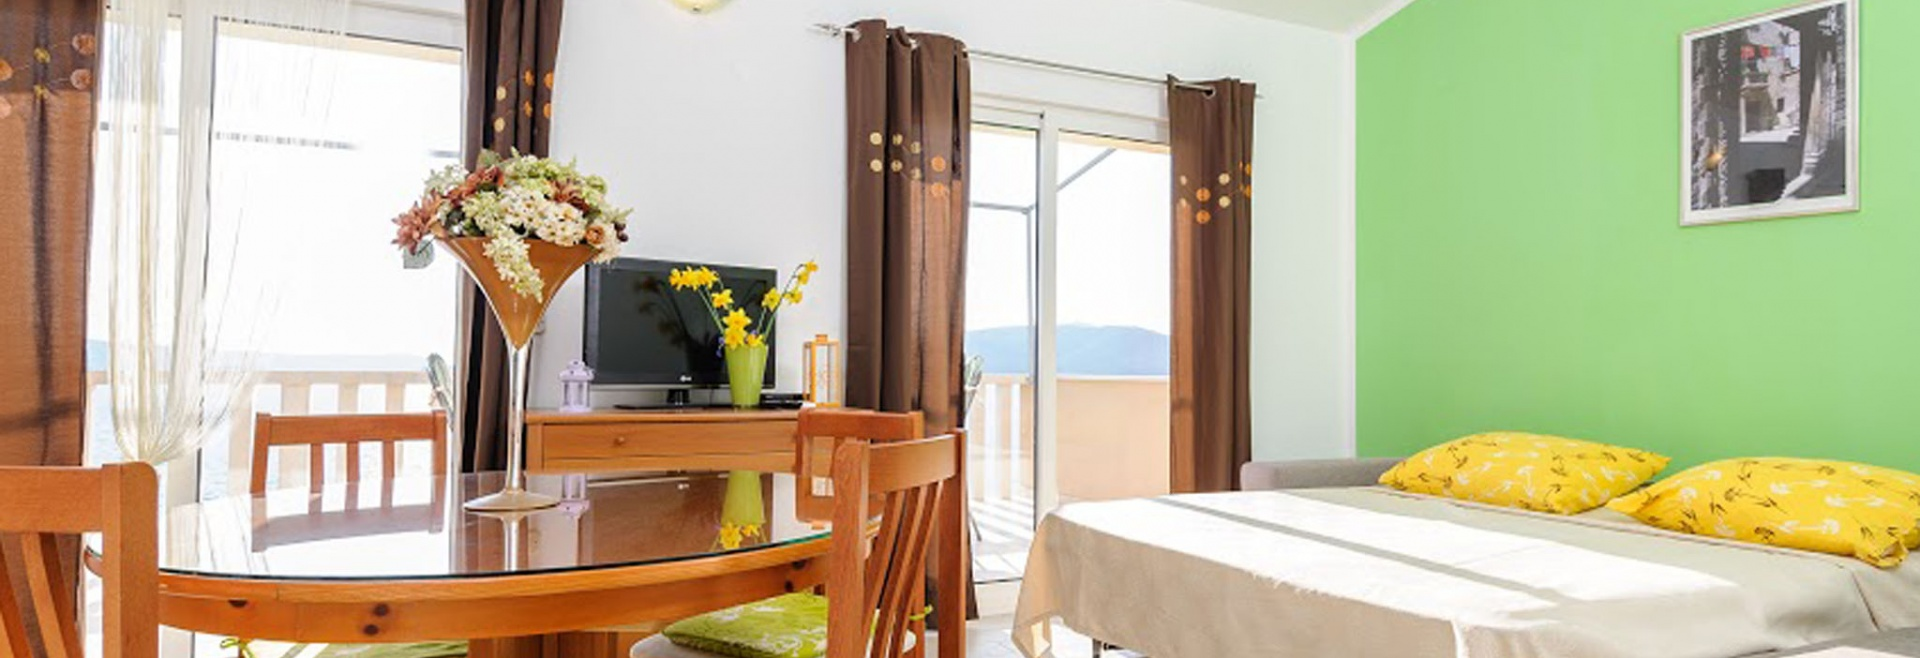 1 Bedrooms, Apartment, Beachfront vacation rental, 1 Bedrooms With 1 Bathrooms, Okrug Donji, Split, Trogir, Island of Ciovo, Dalmatia , Listing ID 1049